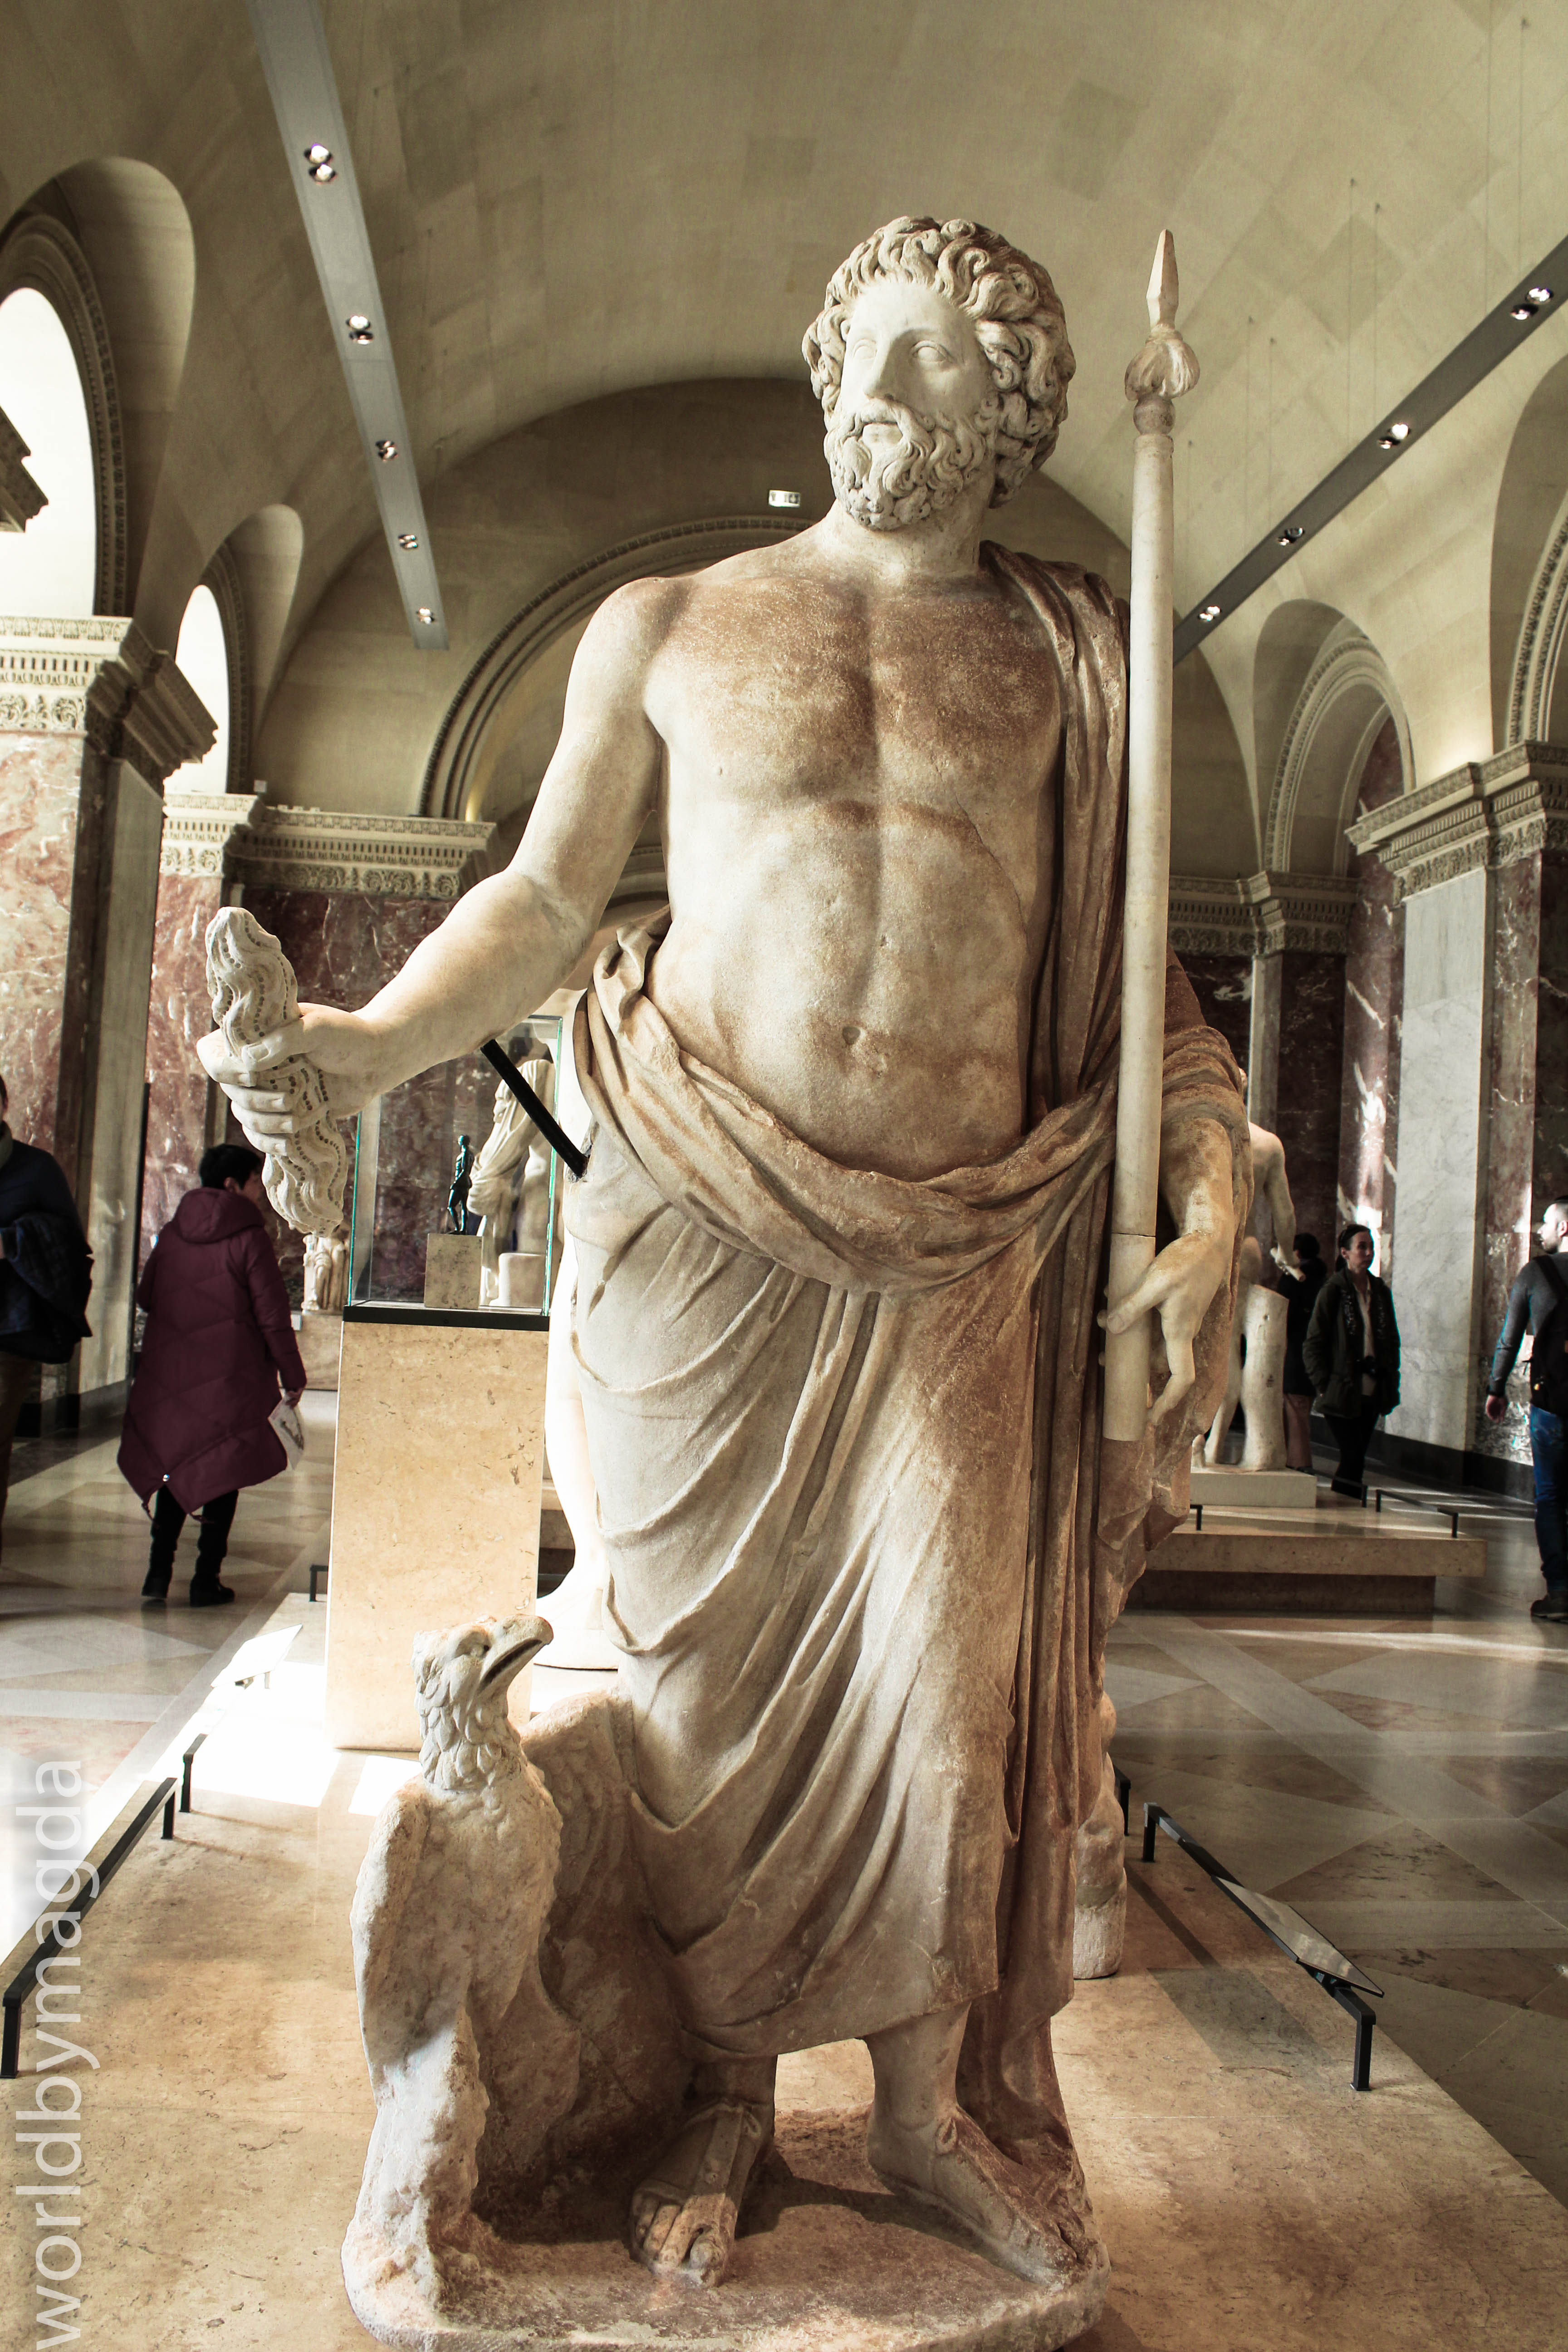 Gallery with ancient greece sculptures